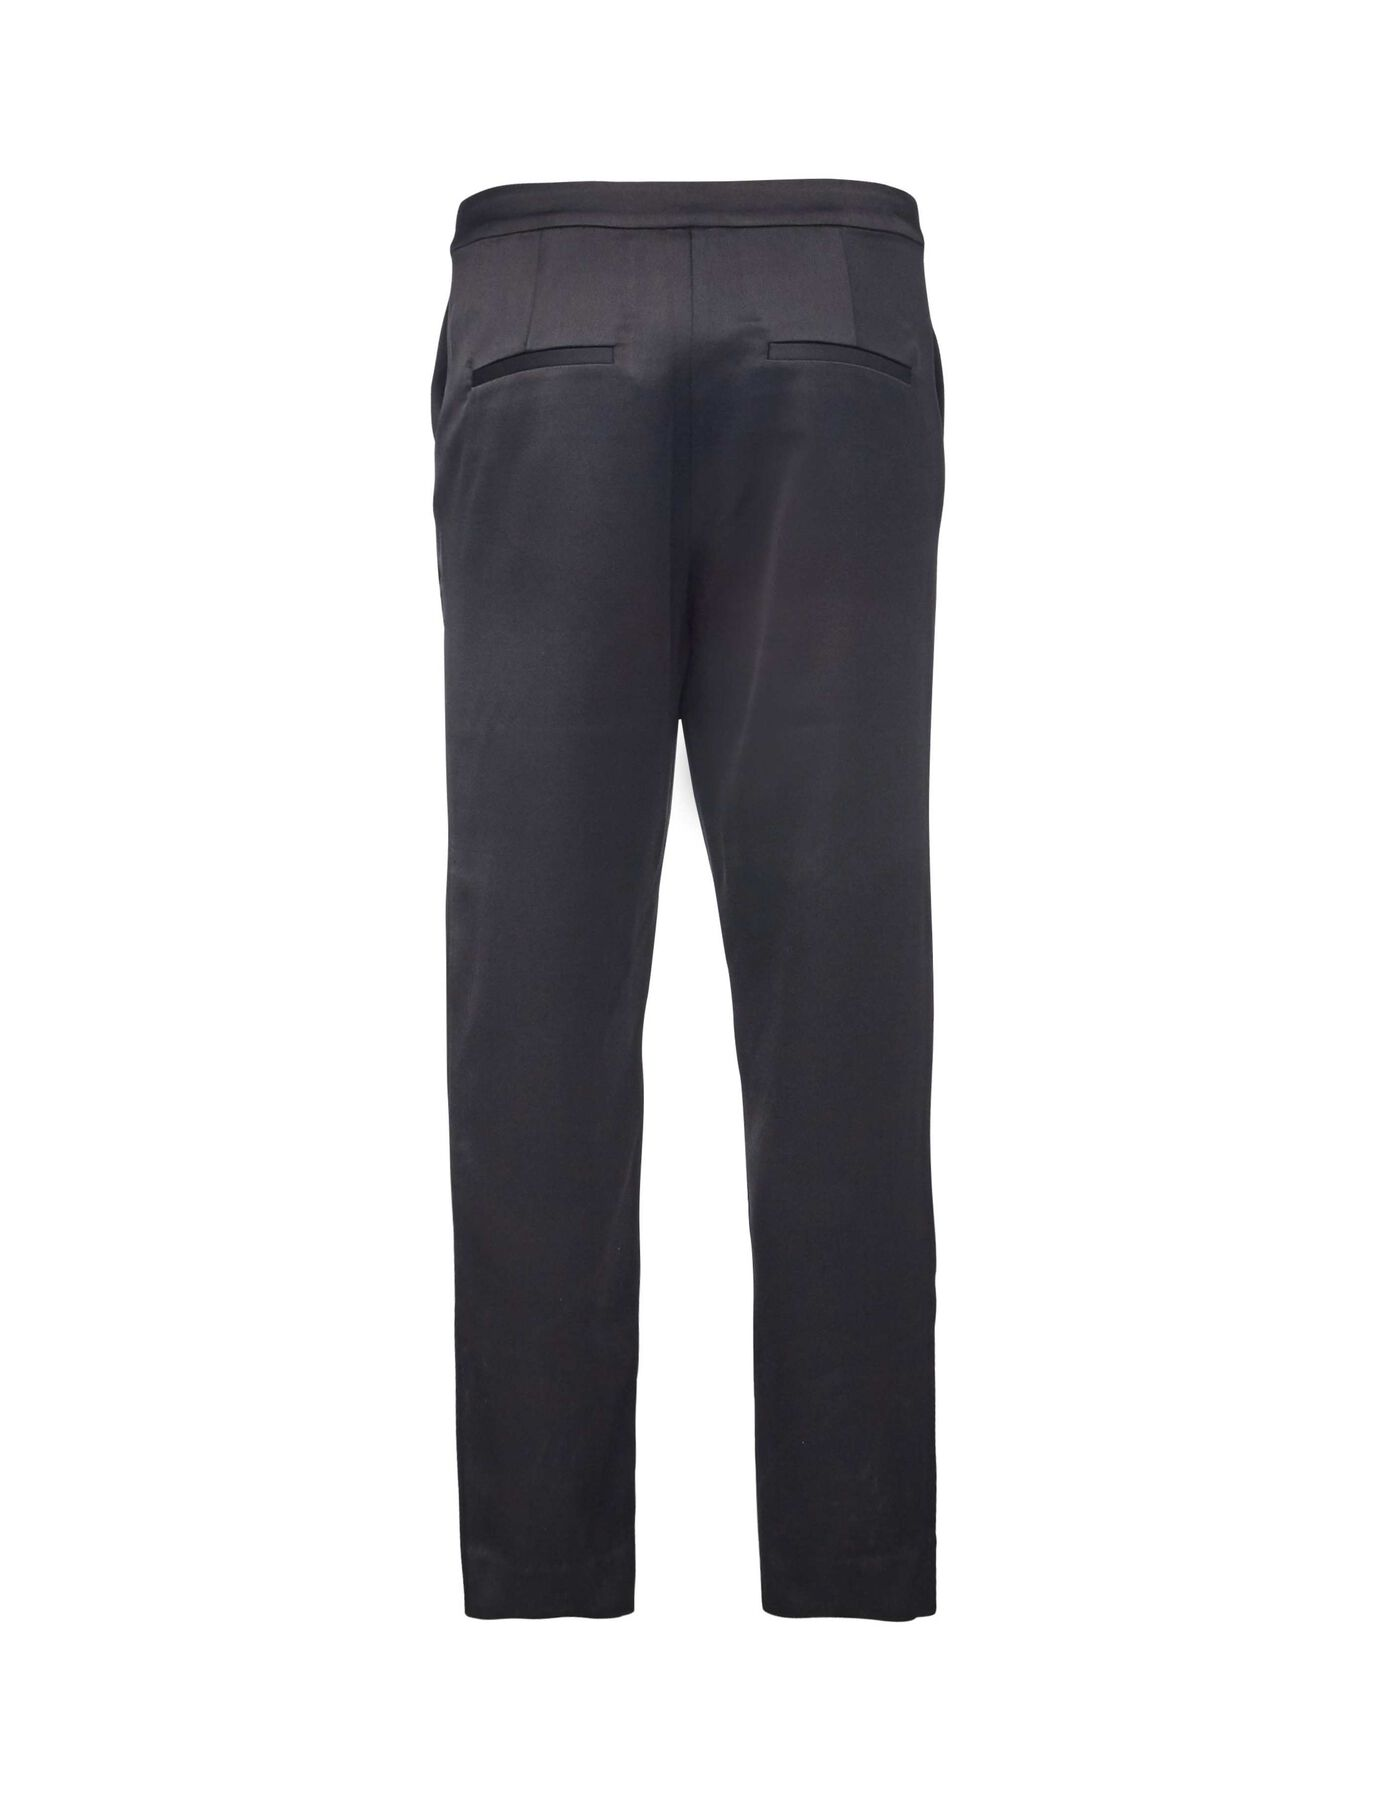 MIRZ 2 TROUSERS in Midnight Black from Tiger of Sweden